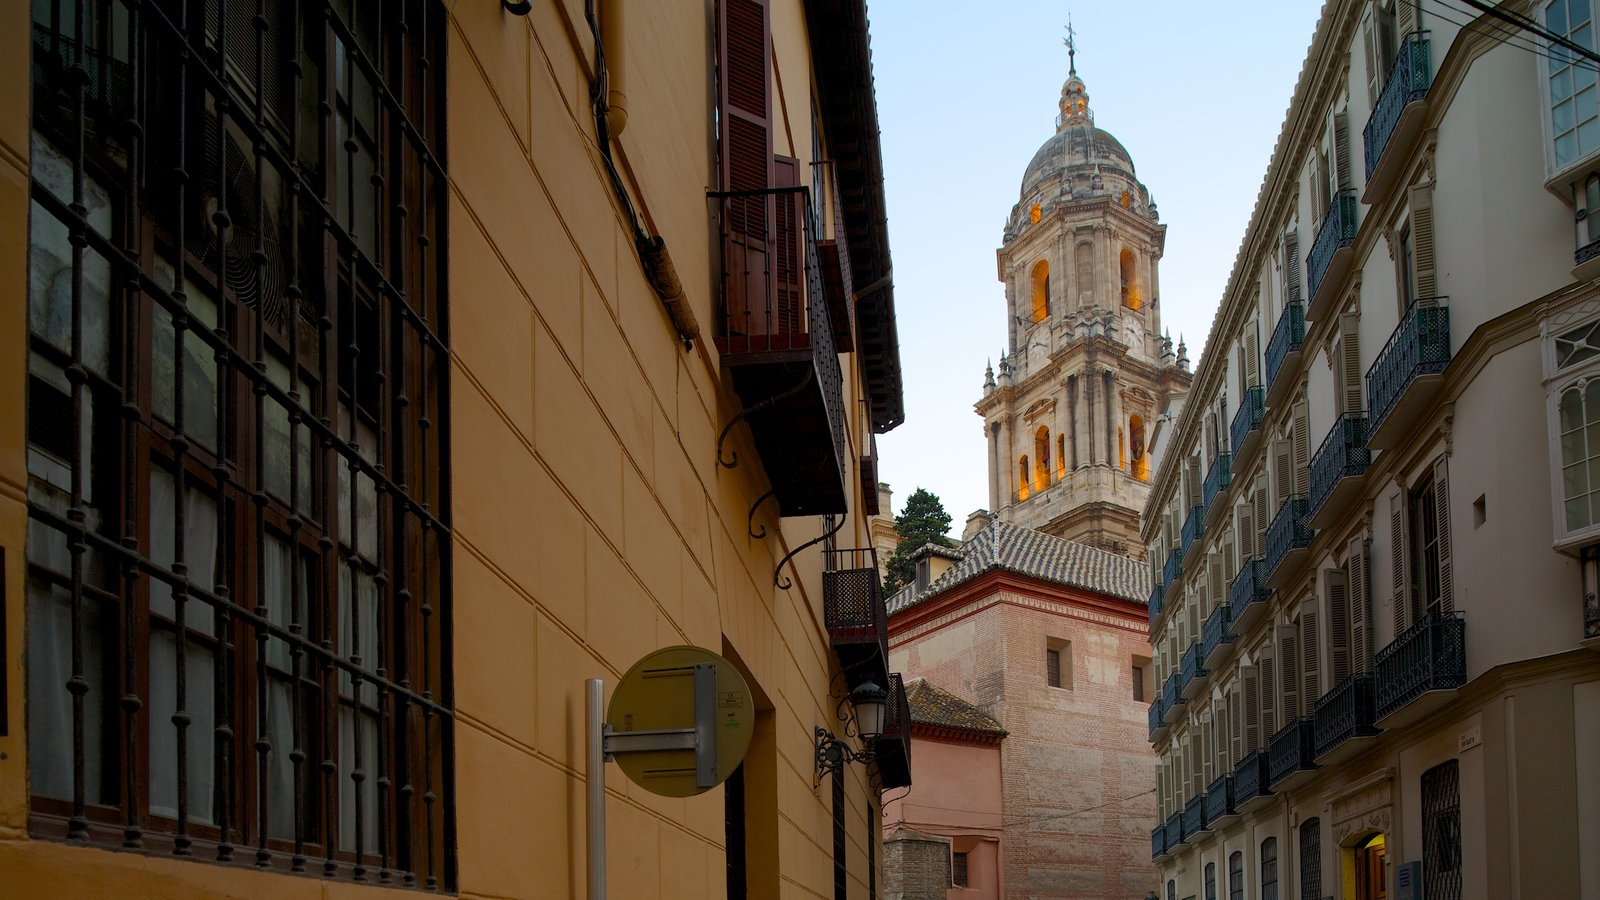 Malaga Cathedral showing a church or cathedral, religious elements and heritage architecture